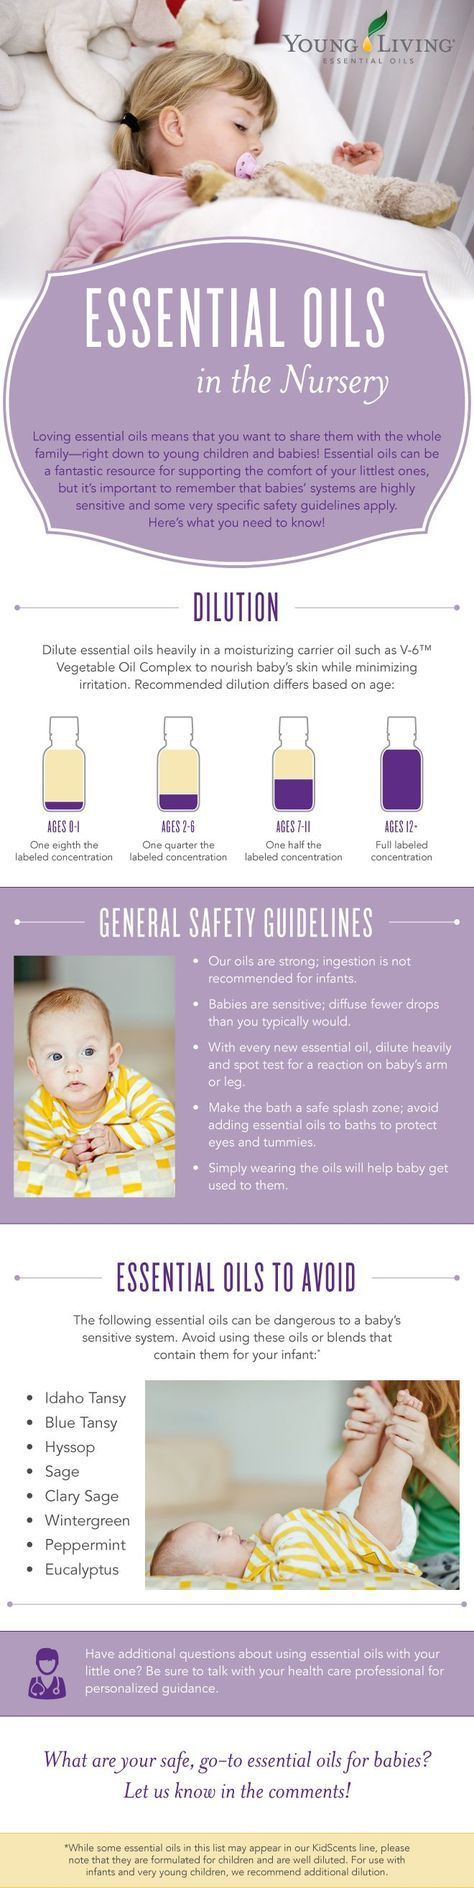 Essential Oils in the Nursery Infographic